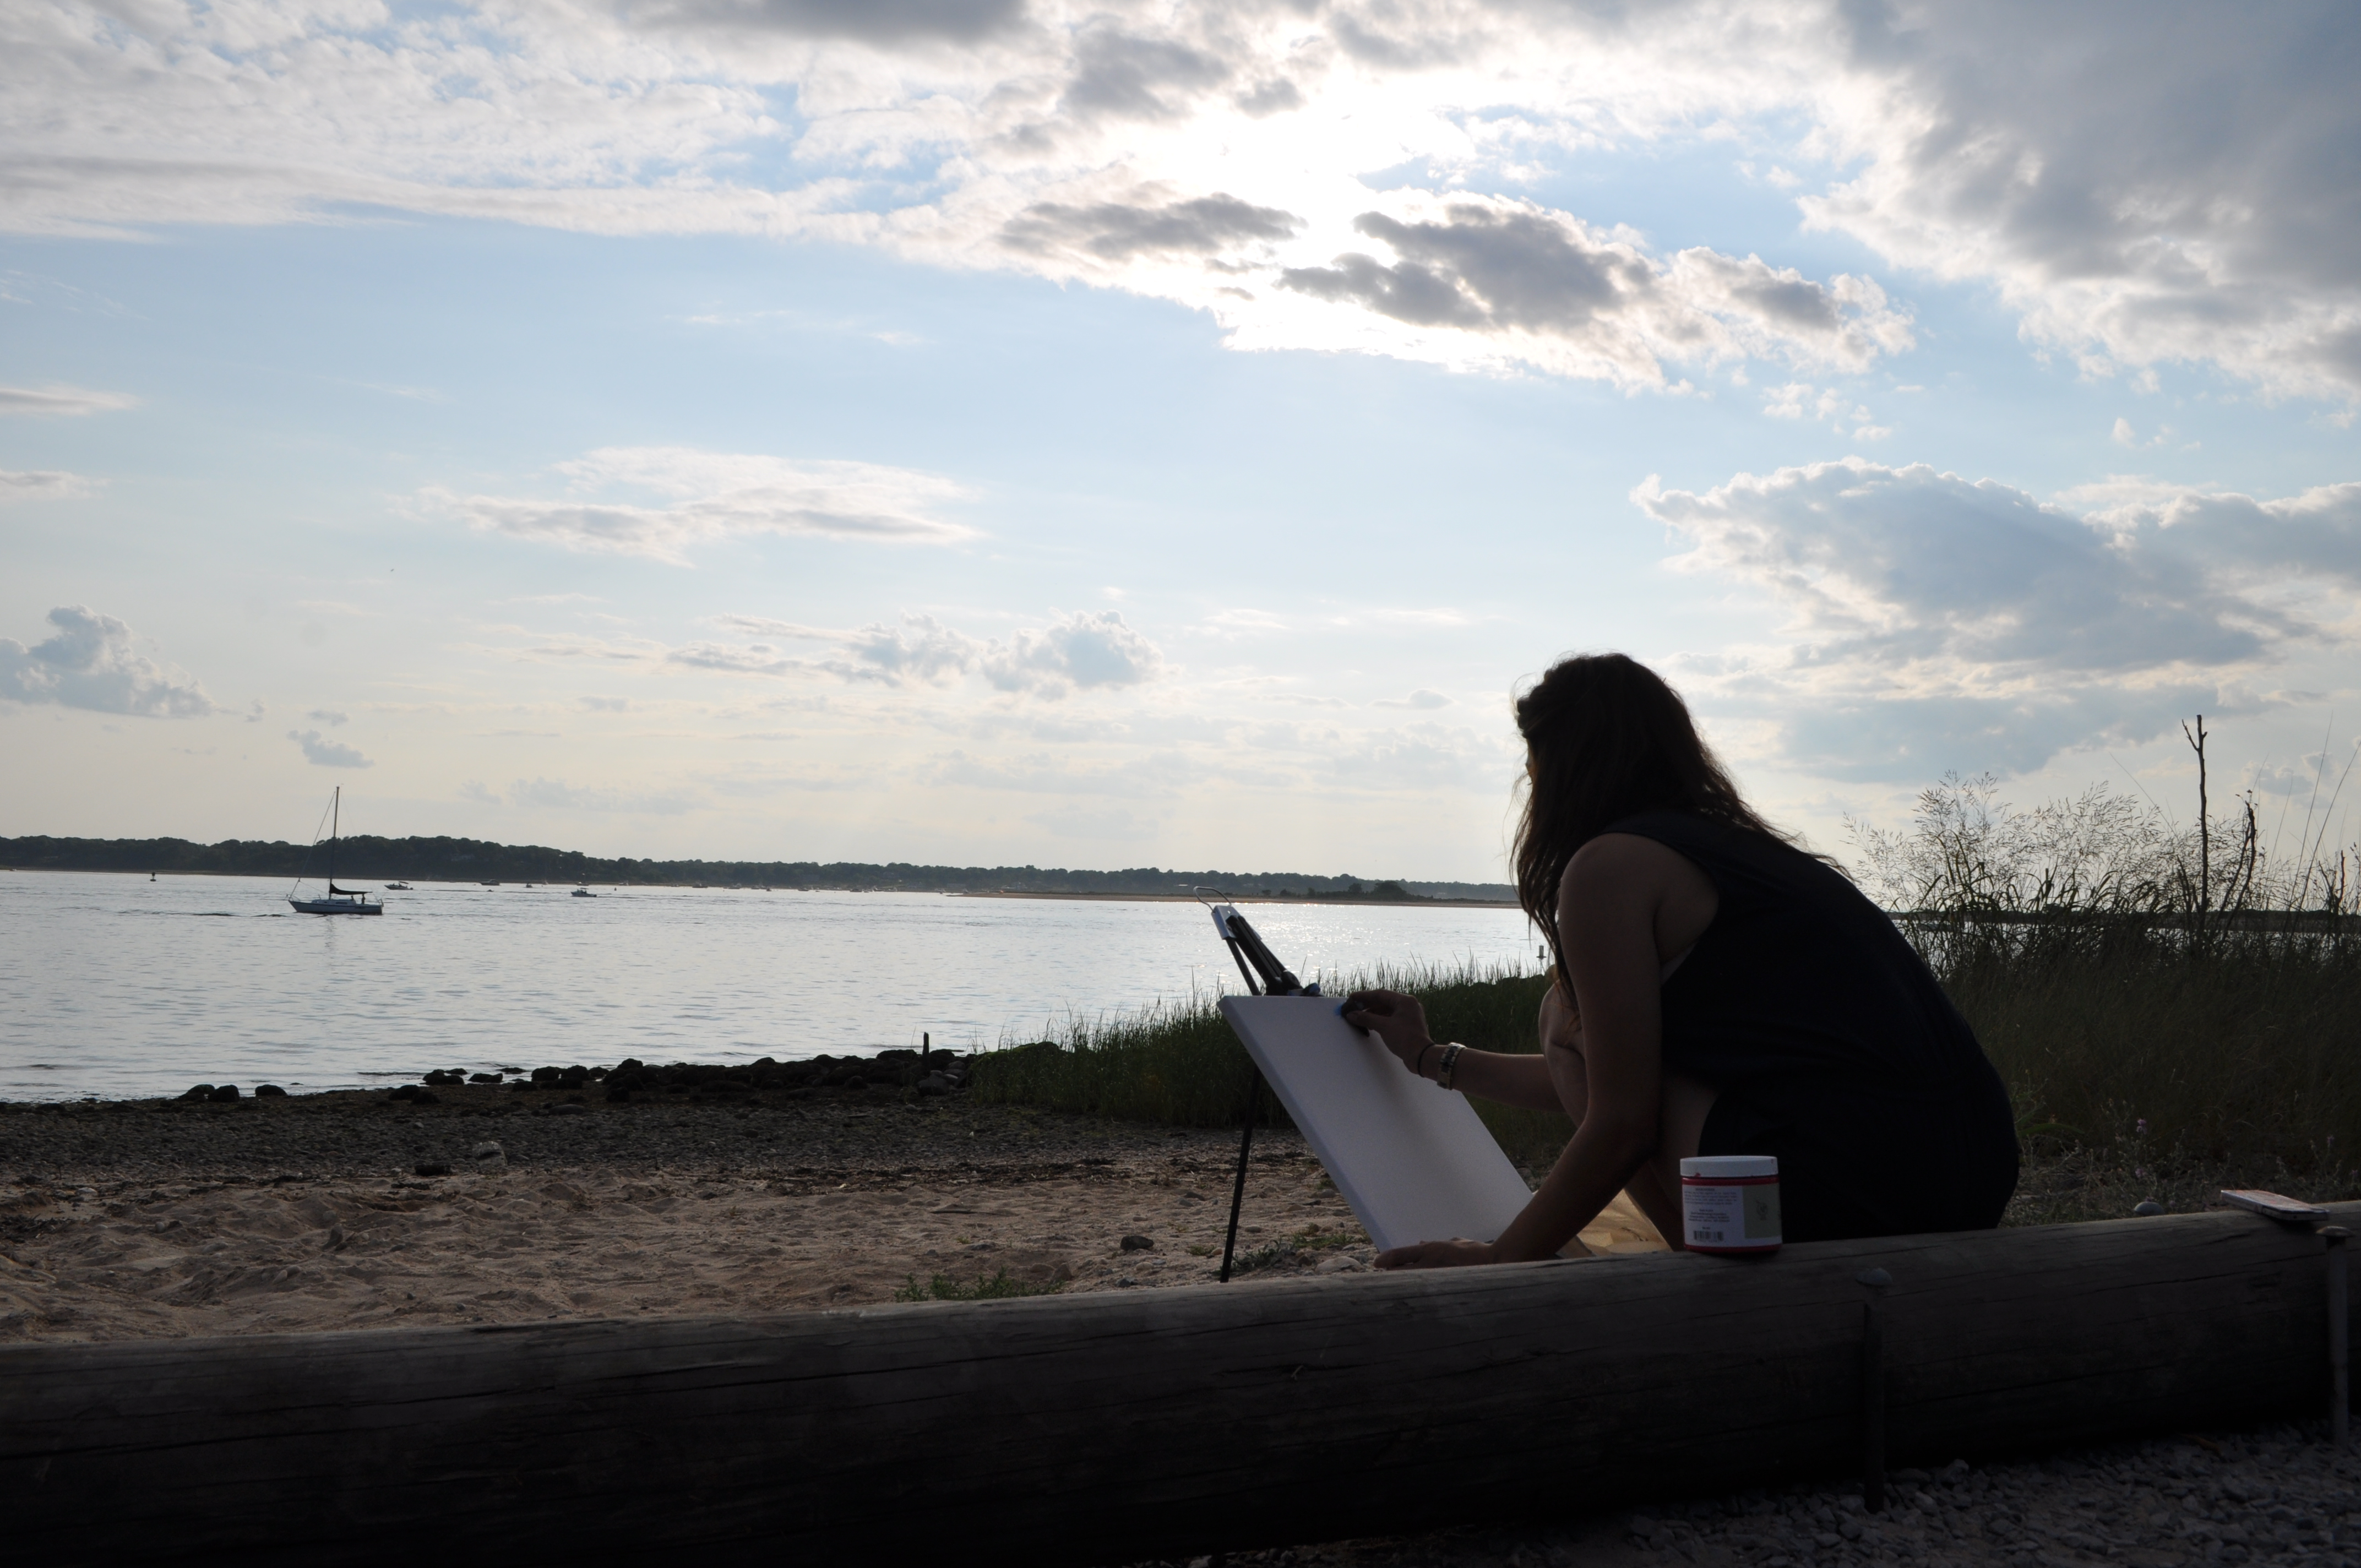 Enjoying the Ease, Painting a Memory at Port Jefferson, Long Island